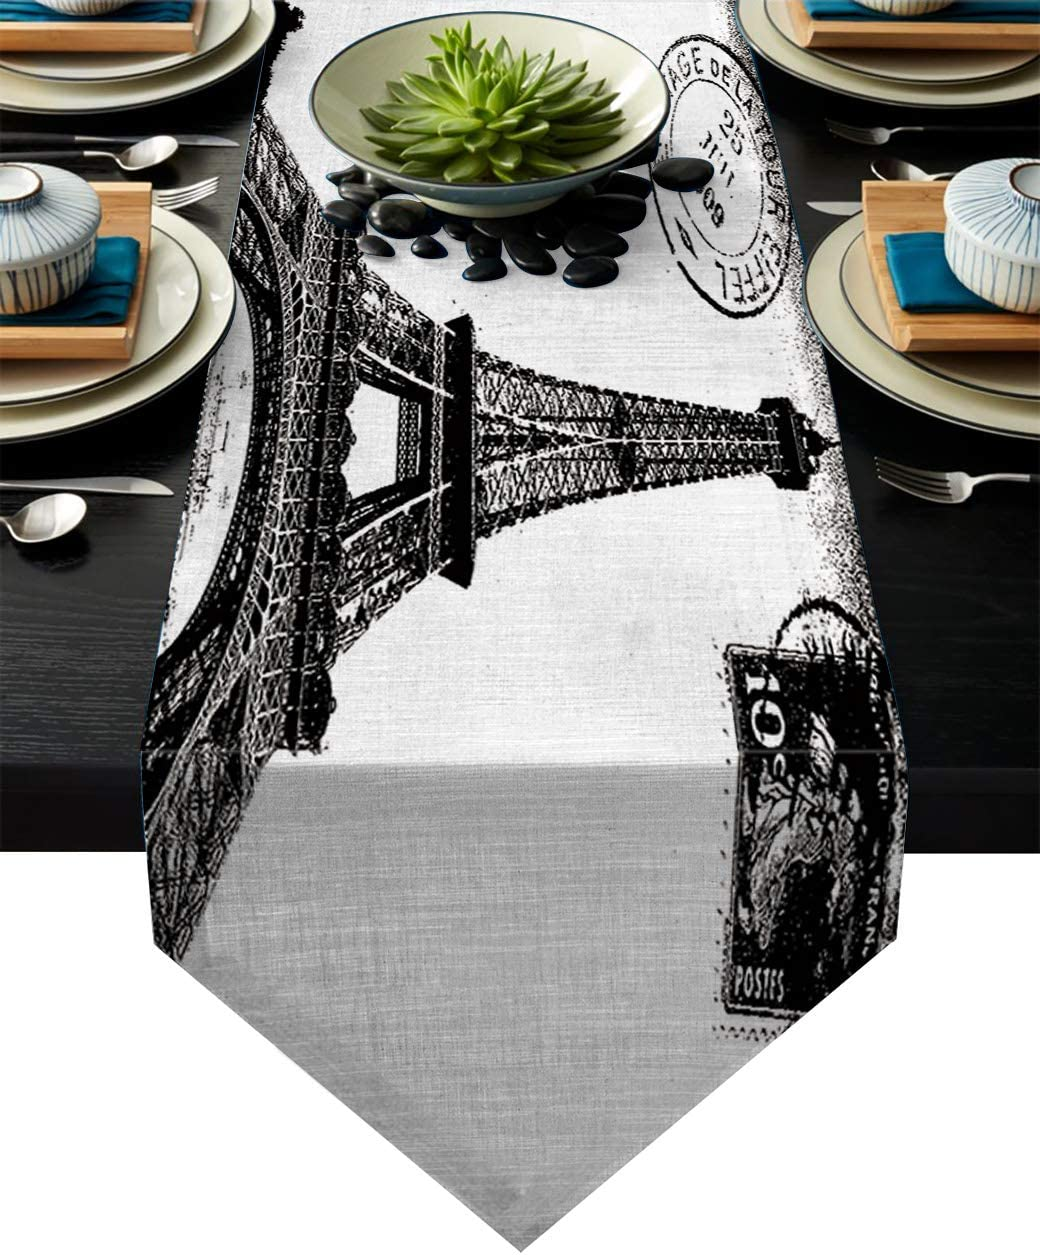 Z&L Home Linen Burlap Table Runner Dresser Scarves, Paris Eiffel Tower Stamp Table Runners for Dinner Holiday Party, Wedding, Events, Kitchen Decor Vintage Black and White 13x90Inch